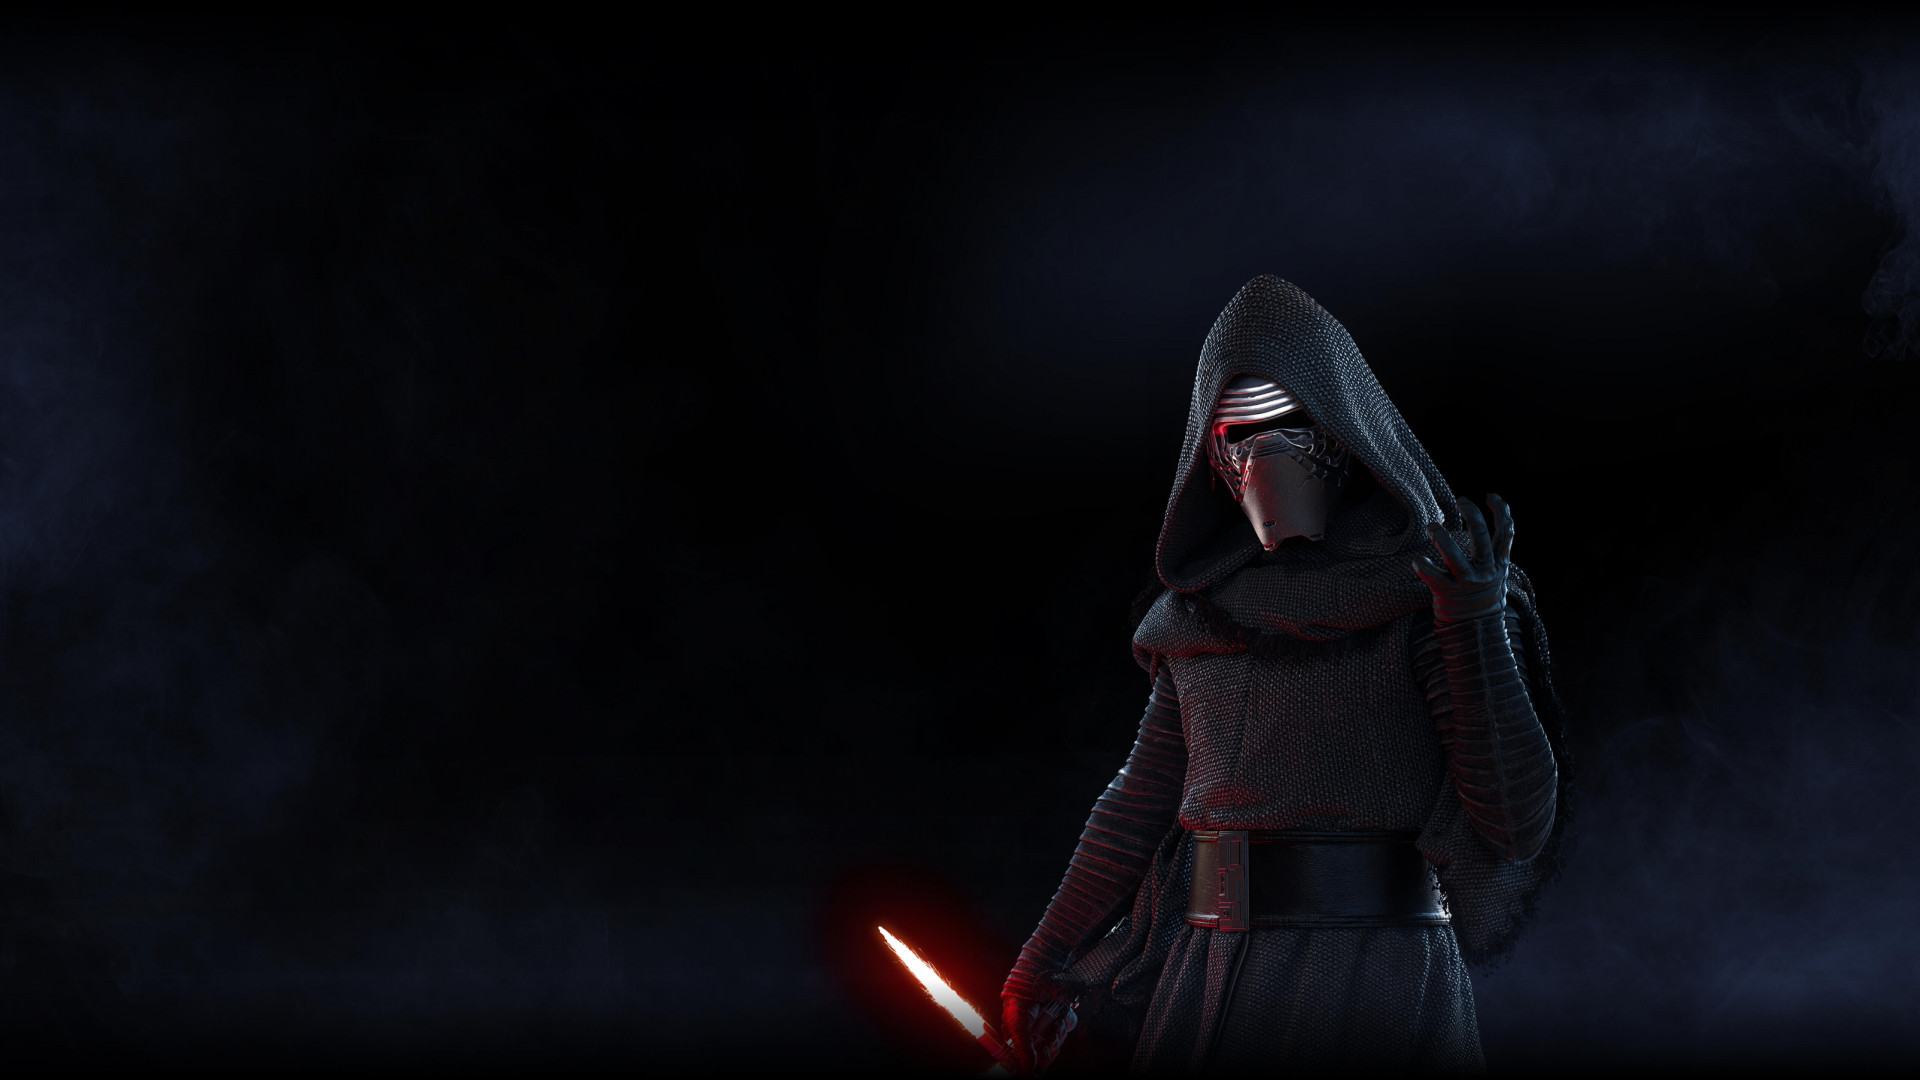 Kylo Ren from Star Wars Battlefront 2 wallpaper 1920x1080